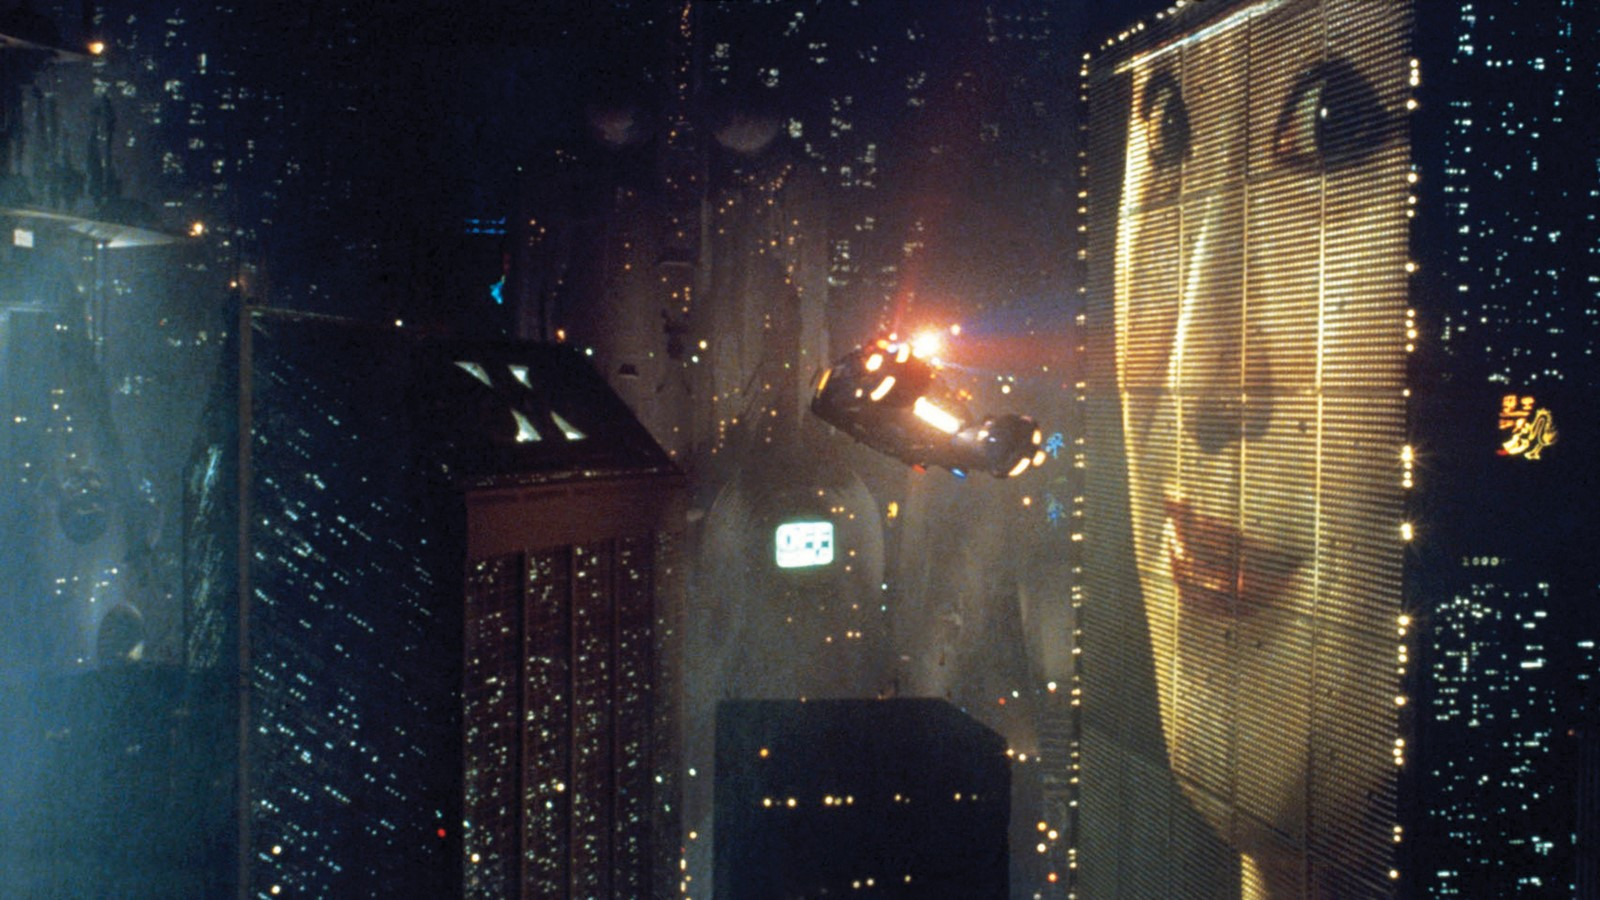 Cities in Movies: Making fiction believable - Sheet4